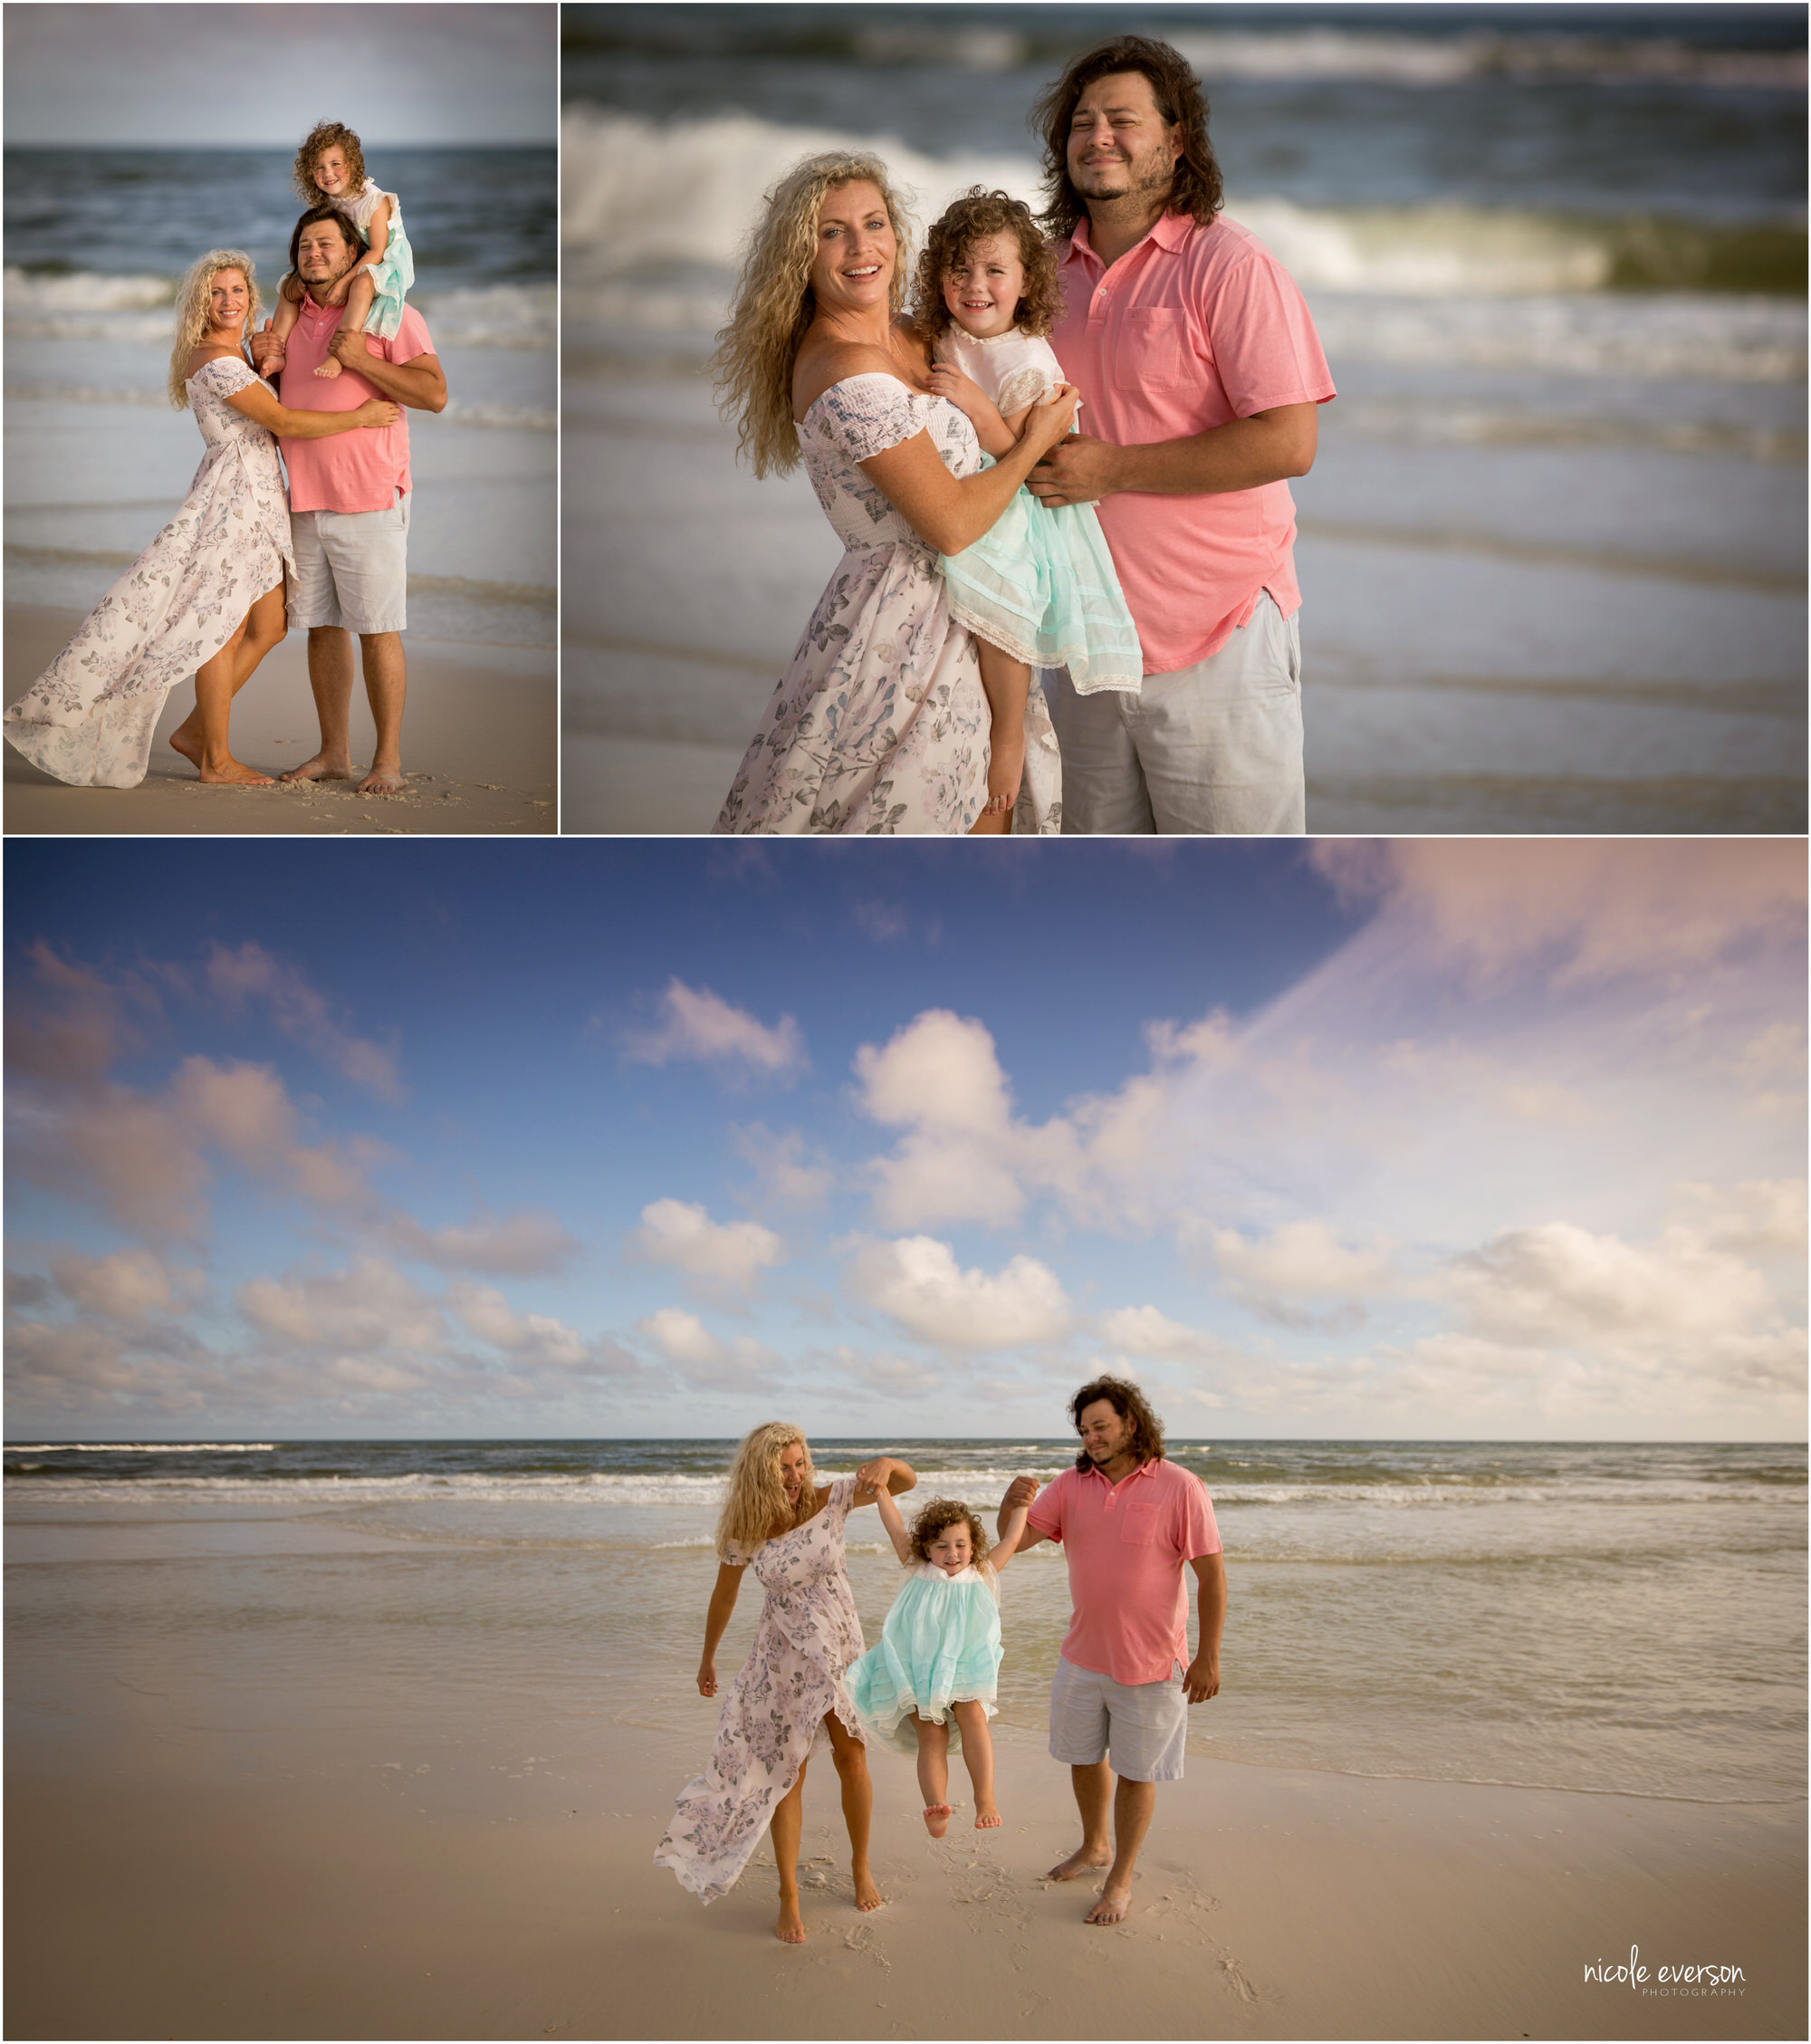 Dad, mom, and daughter having fun in the sand at Watercolor Inn Beach. Nicole Everson Photography at Watercolor Inn Beach.